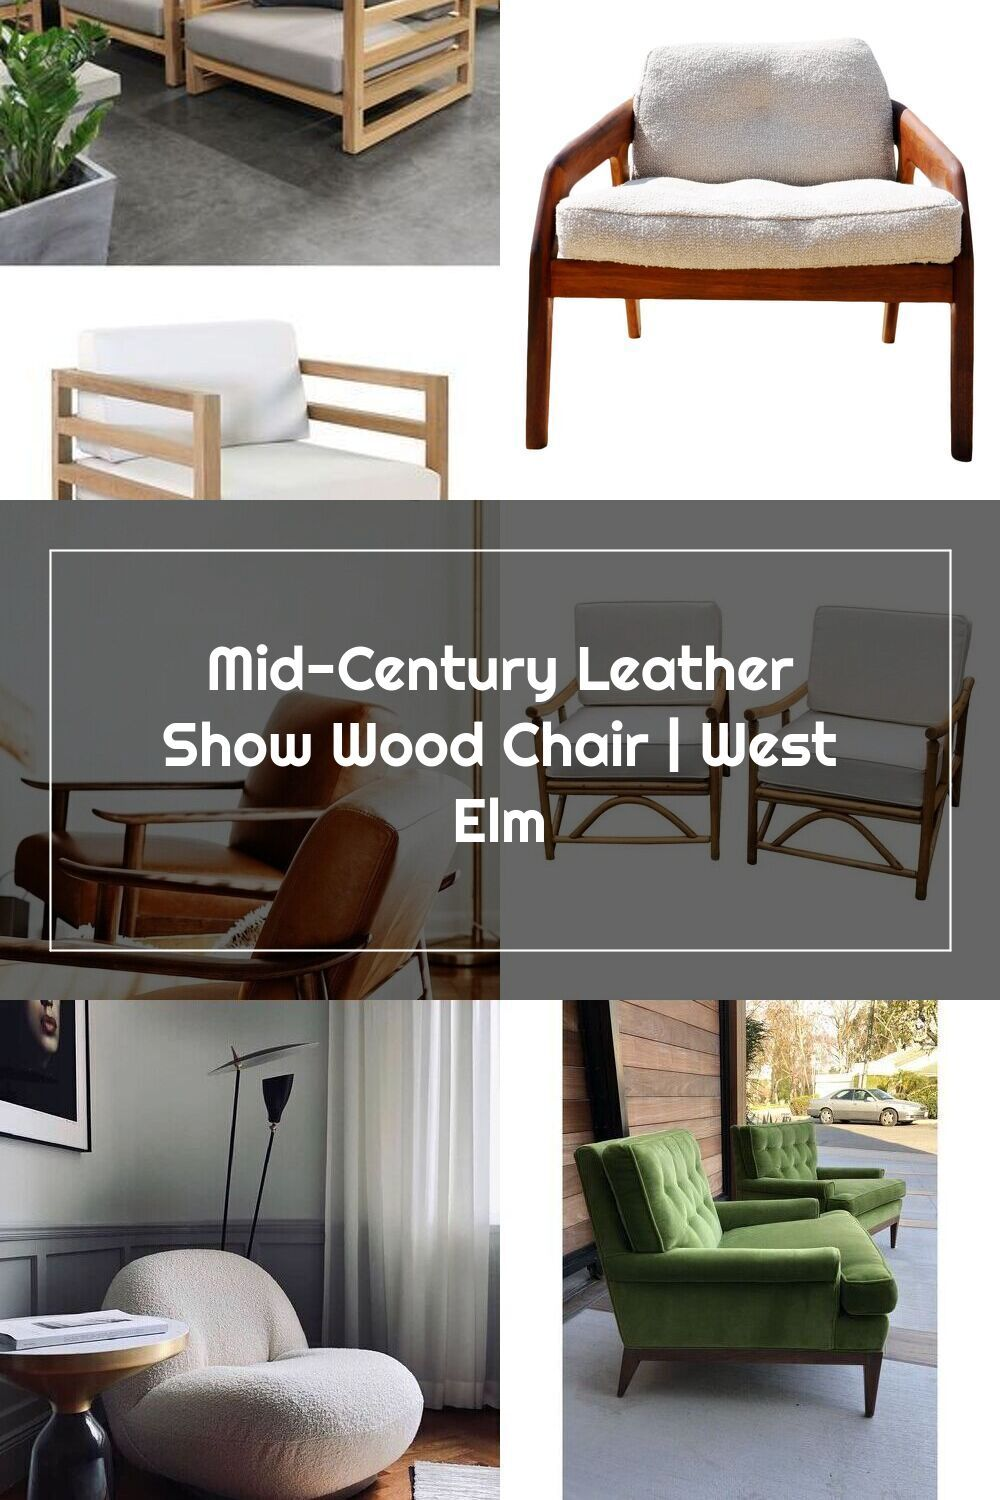 Midcentury leather show wood chair west elm in 2020